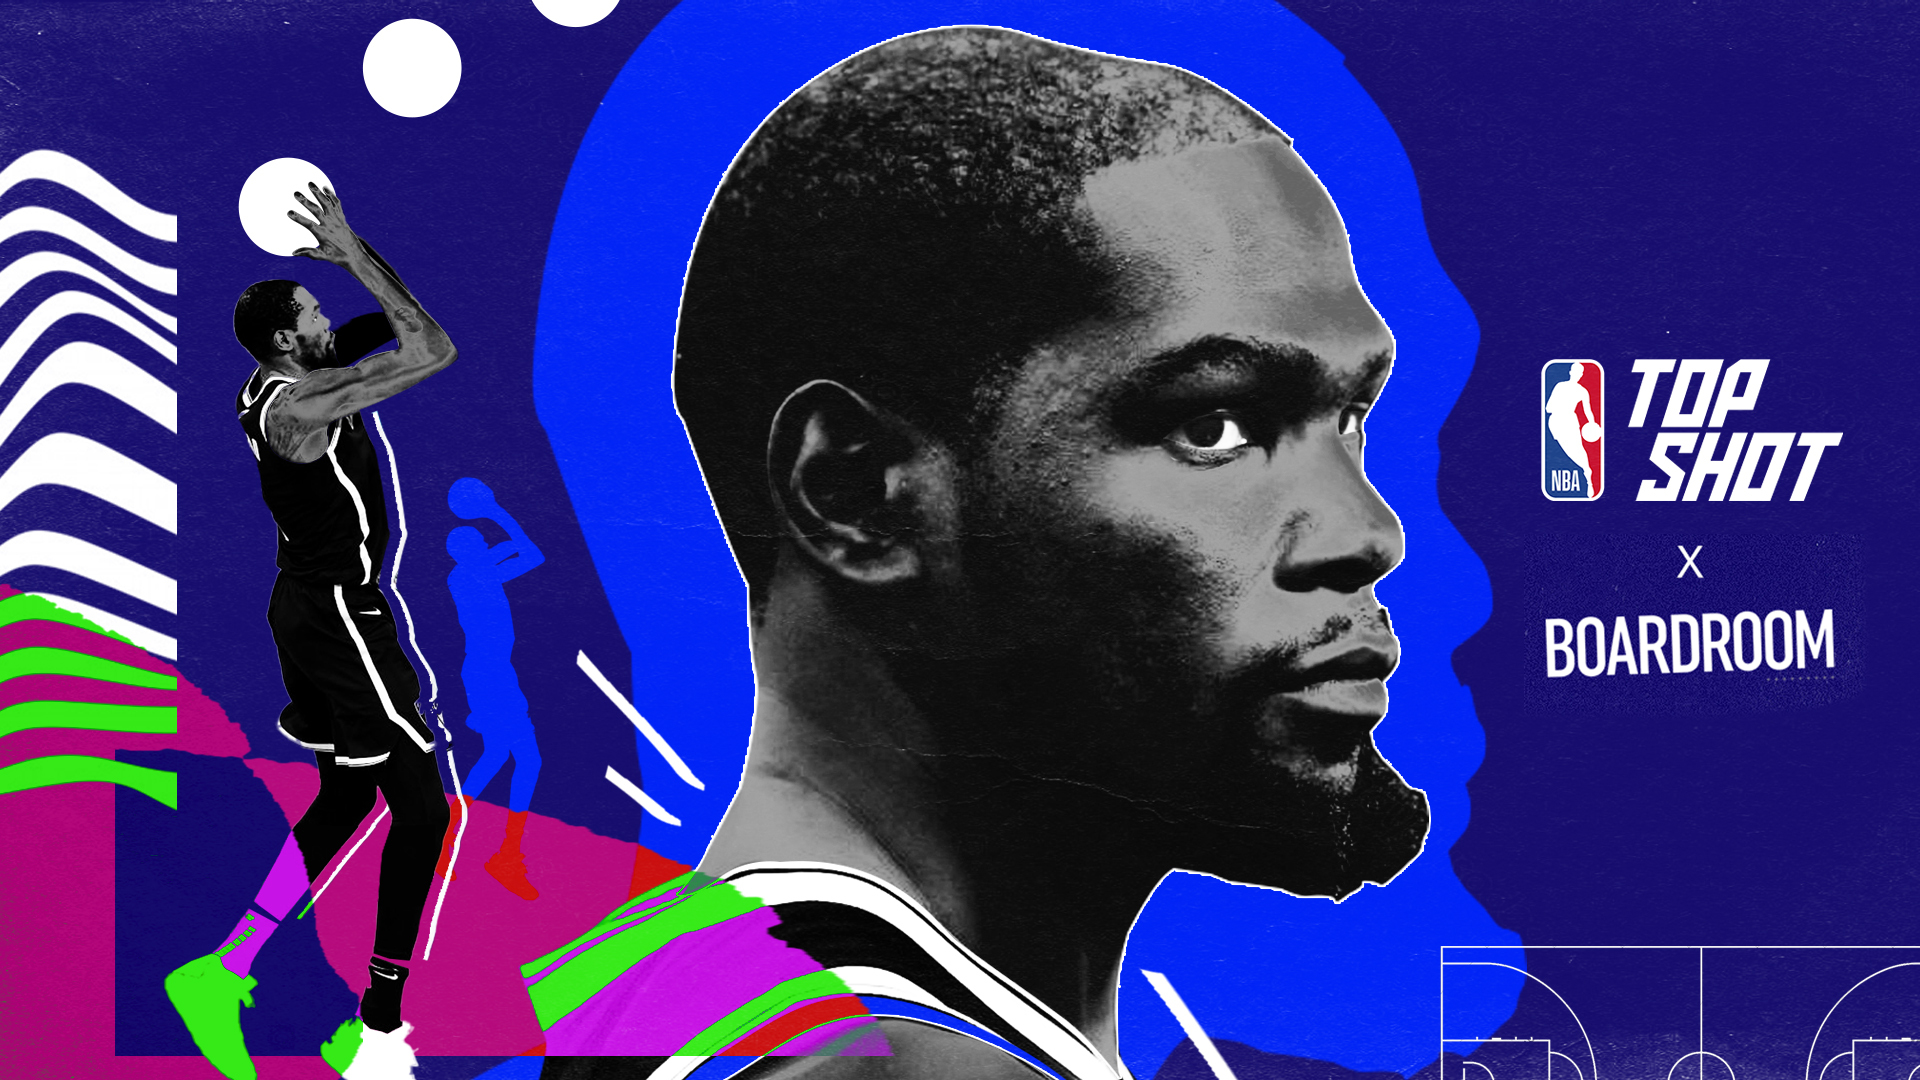 With curated Moments and creative development from KD & Boardroom, our new partnership will bring Durant & his fans closer than ever.